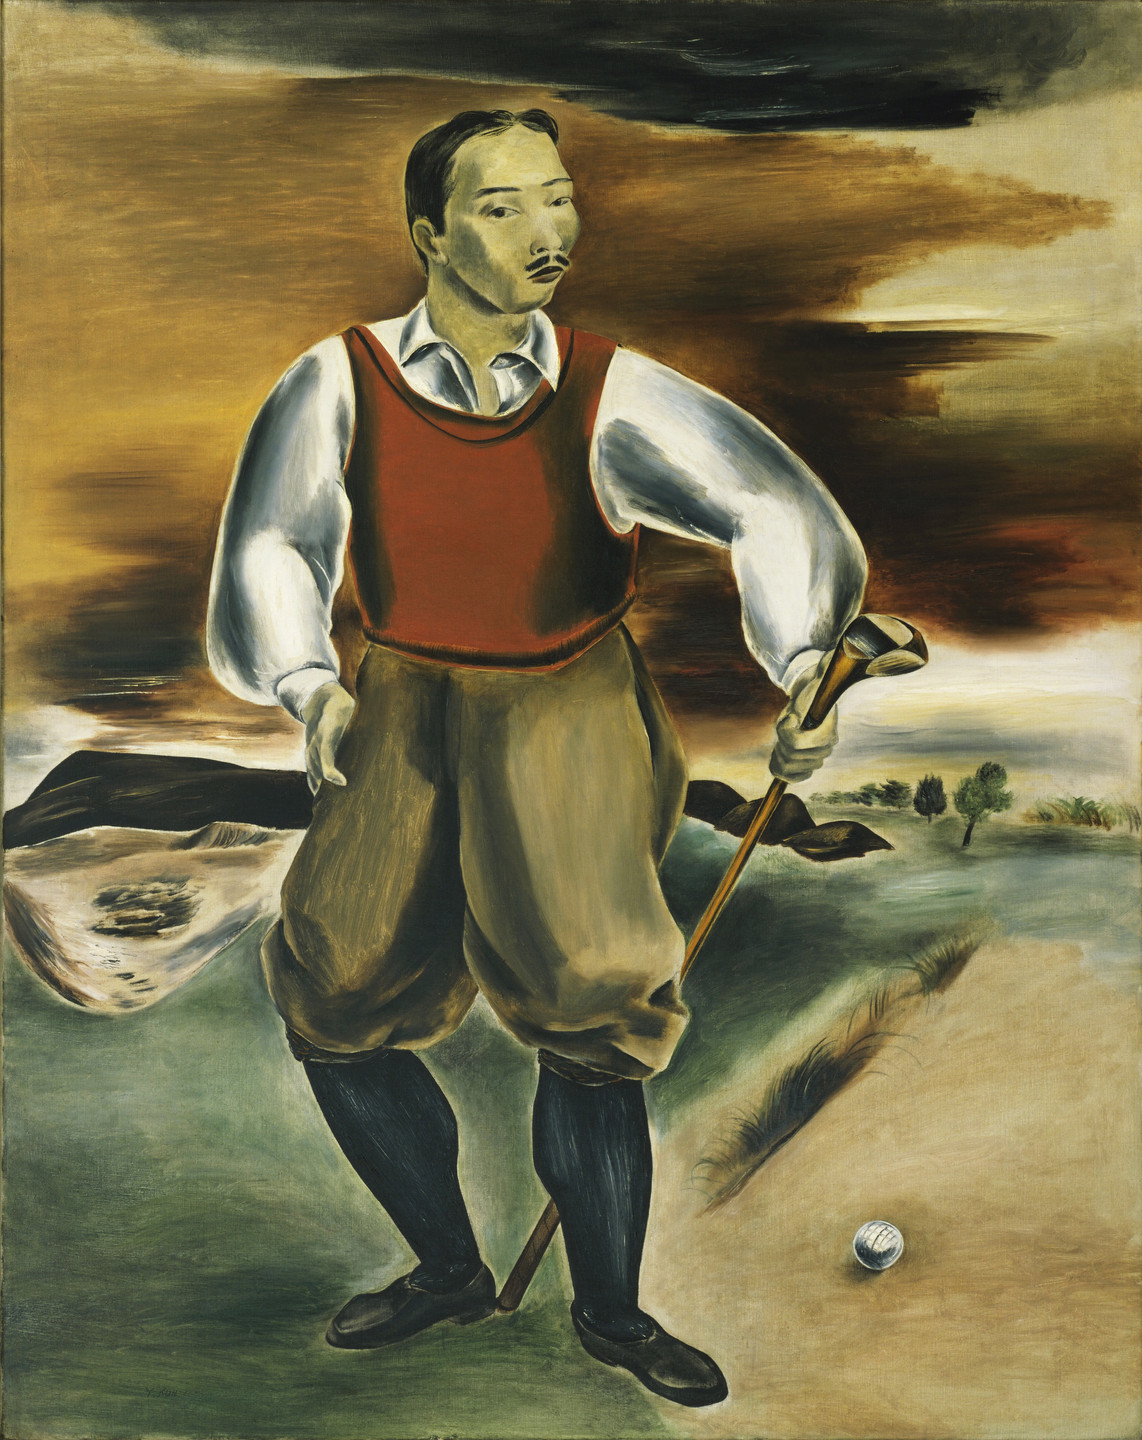 Yasuo Kuniyoshi. Self-Portrait as a Golf Player. 1927